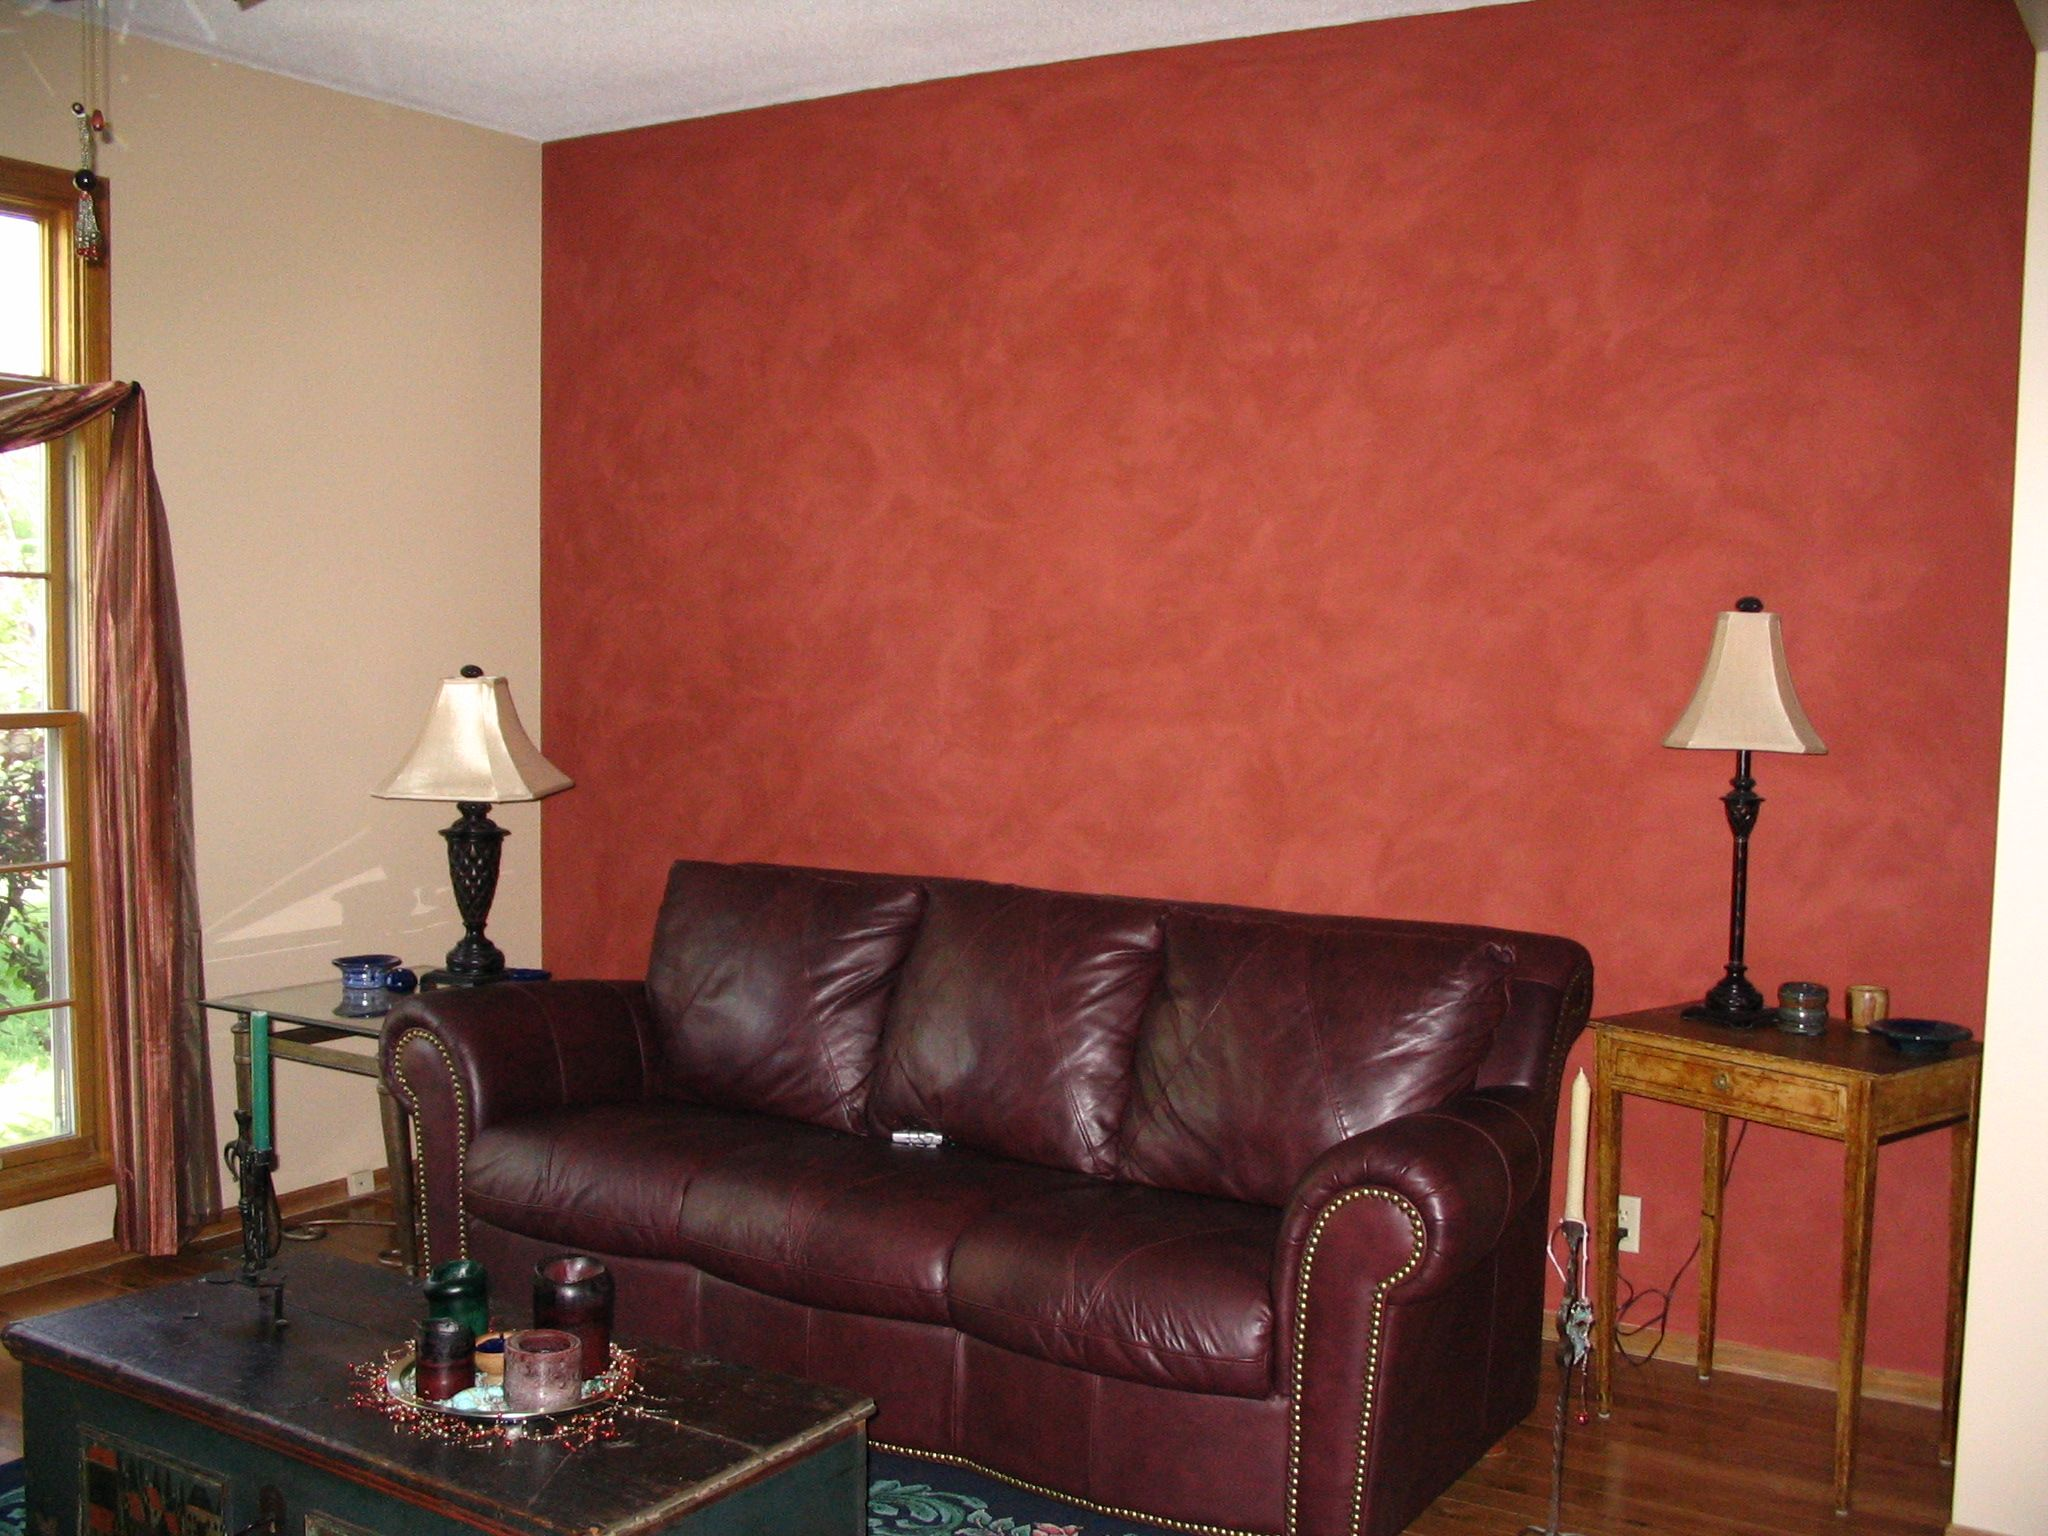 I Used Behr Eggshell Clic Taupe As A Main Color With An Accent Wall In Rowan Berry Ralph Lauren Suede Paint